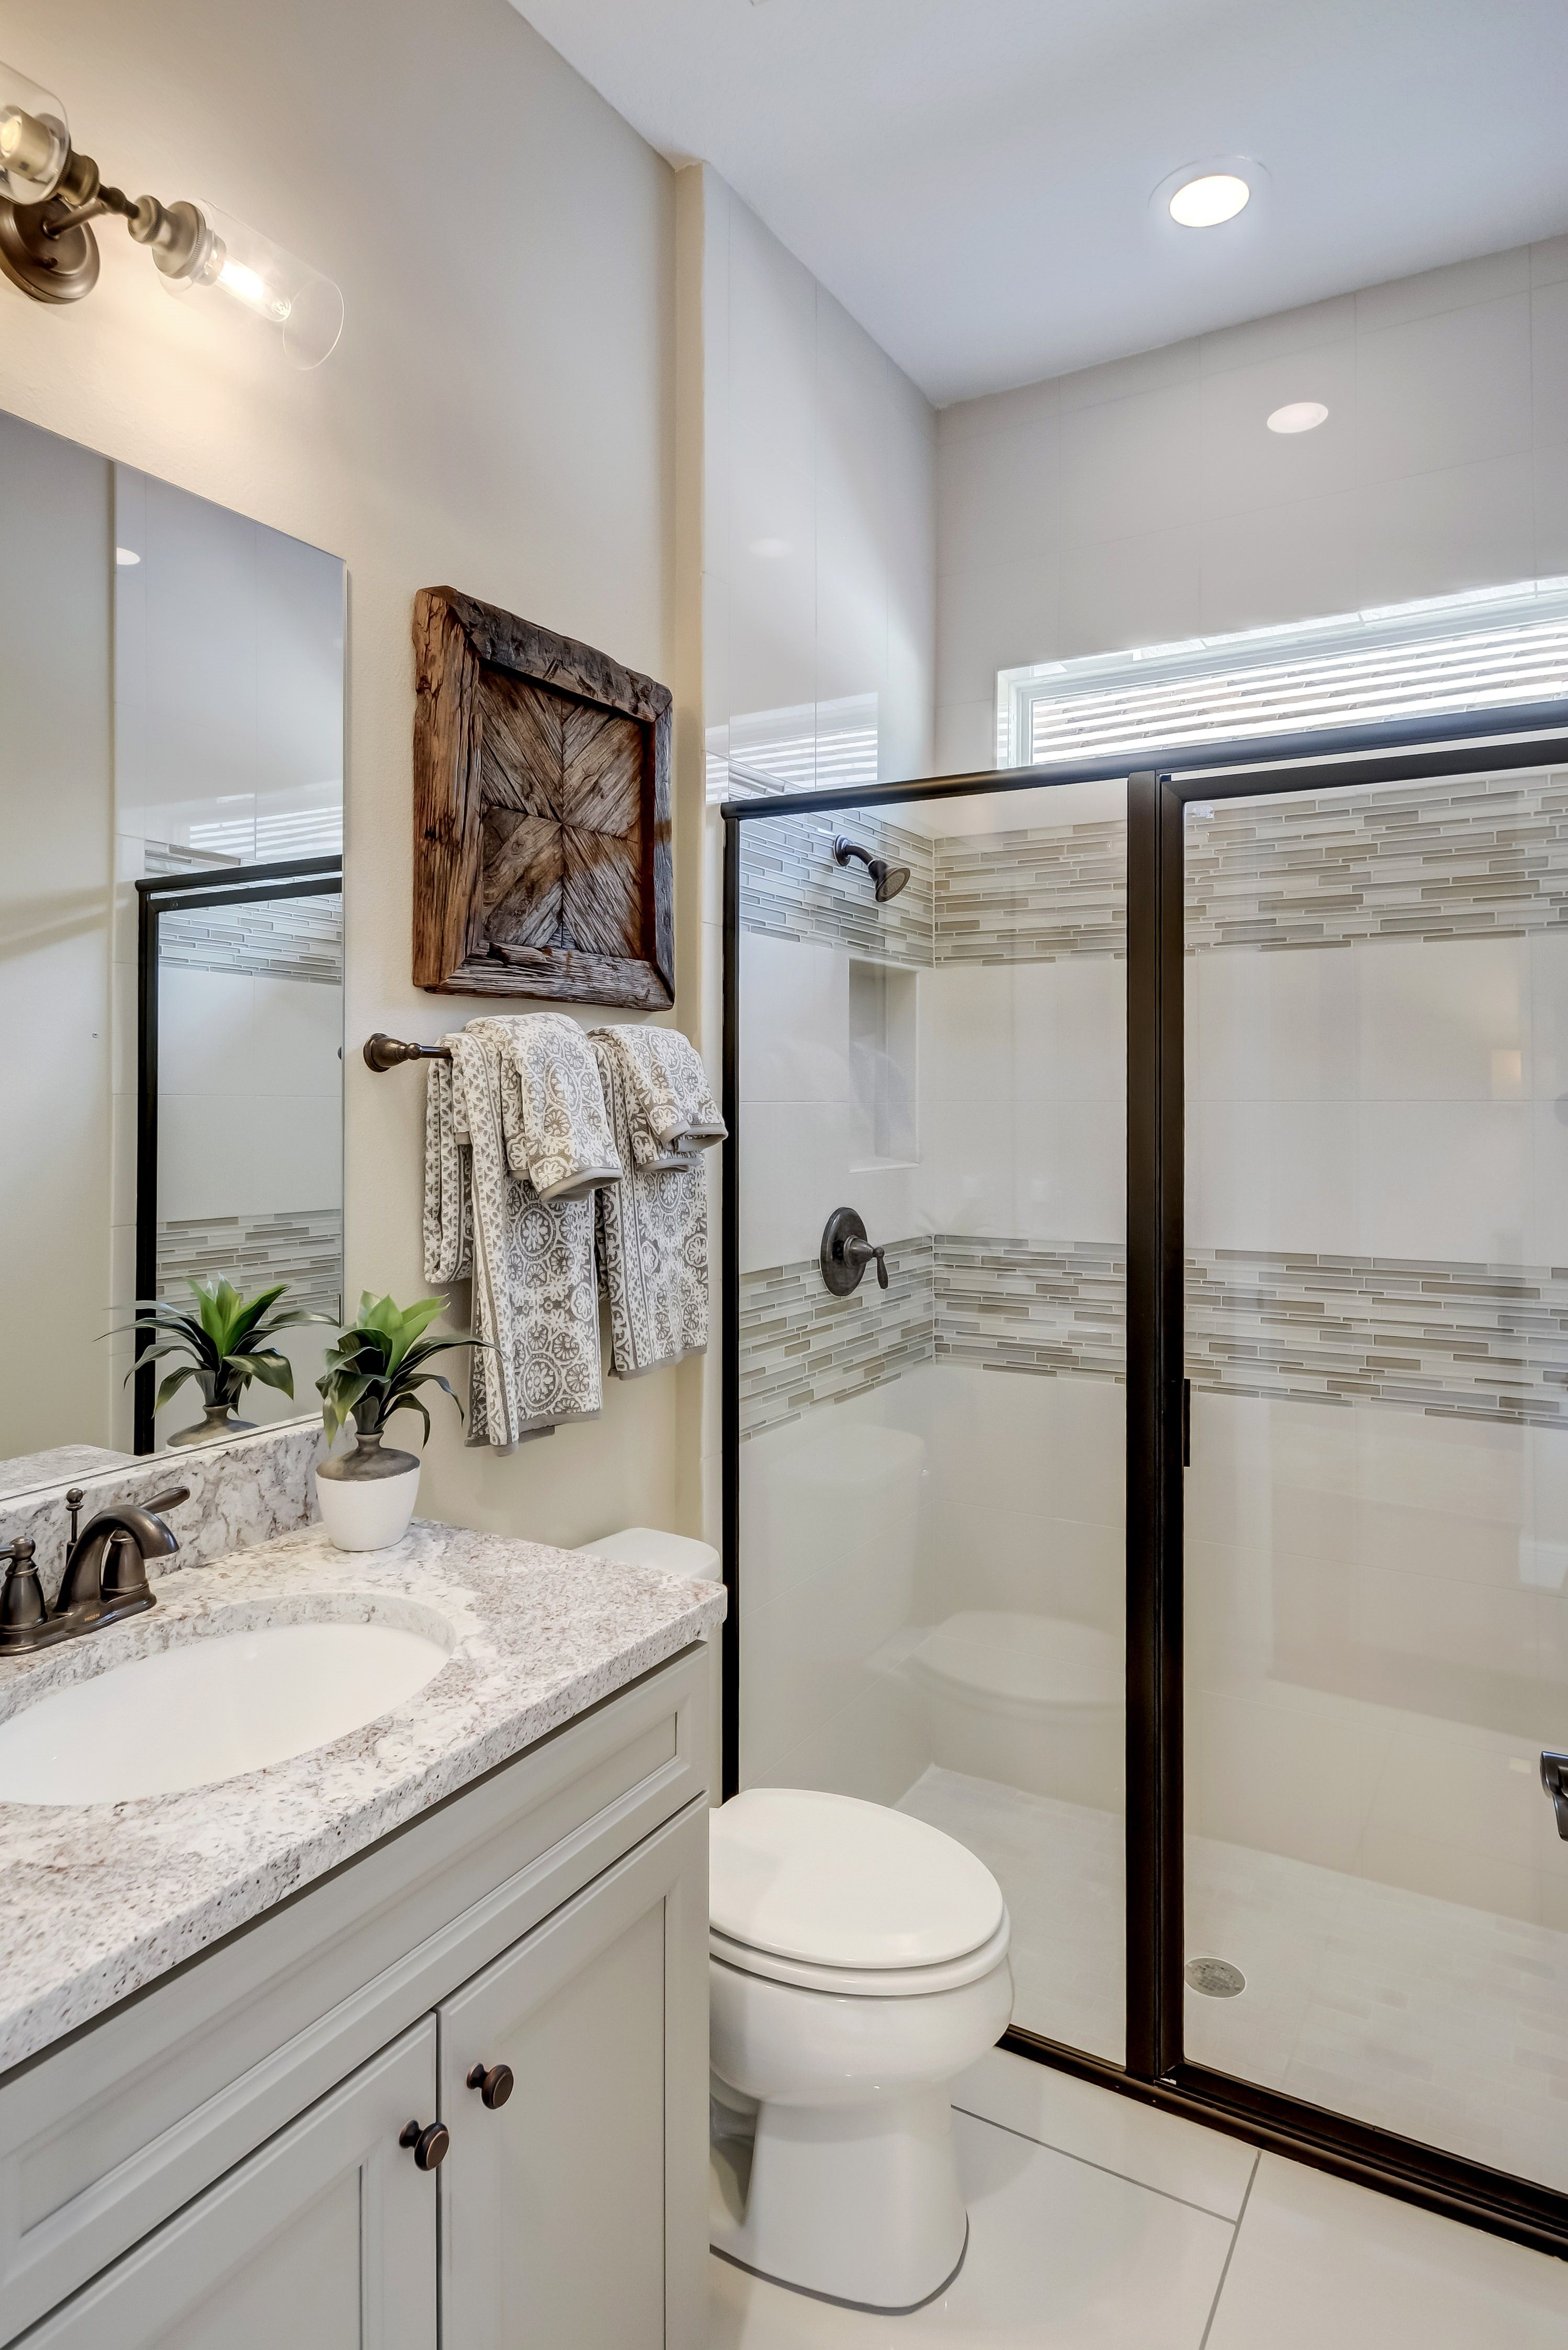 Bathroom featured in the Saint Thomas By K. Hovnanian's® Four Seasons in Orlando, FL